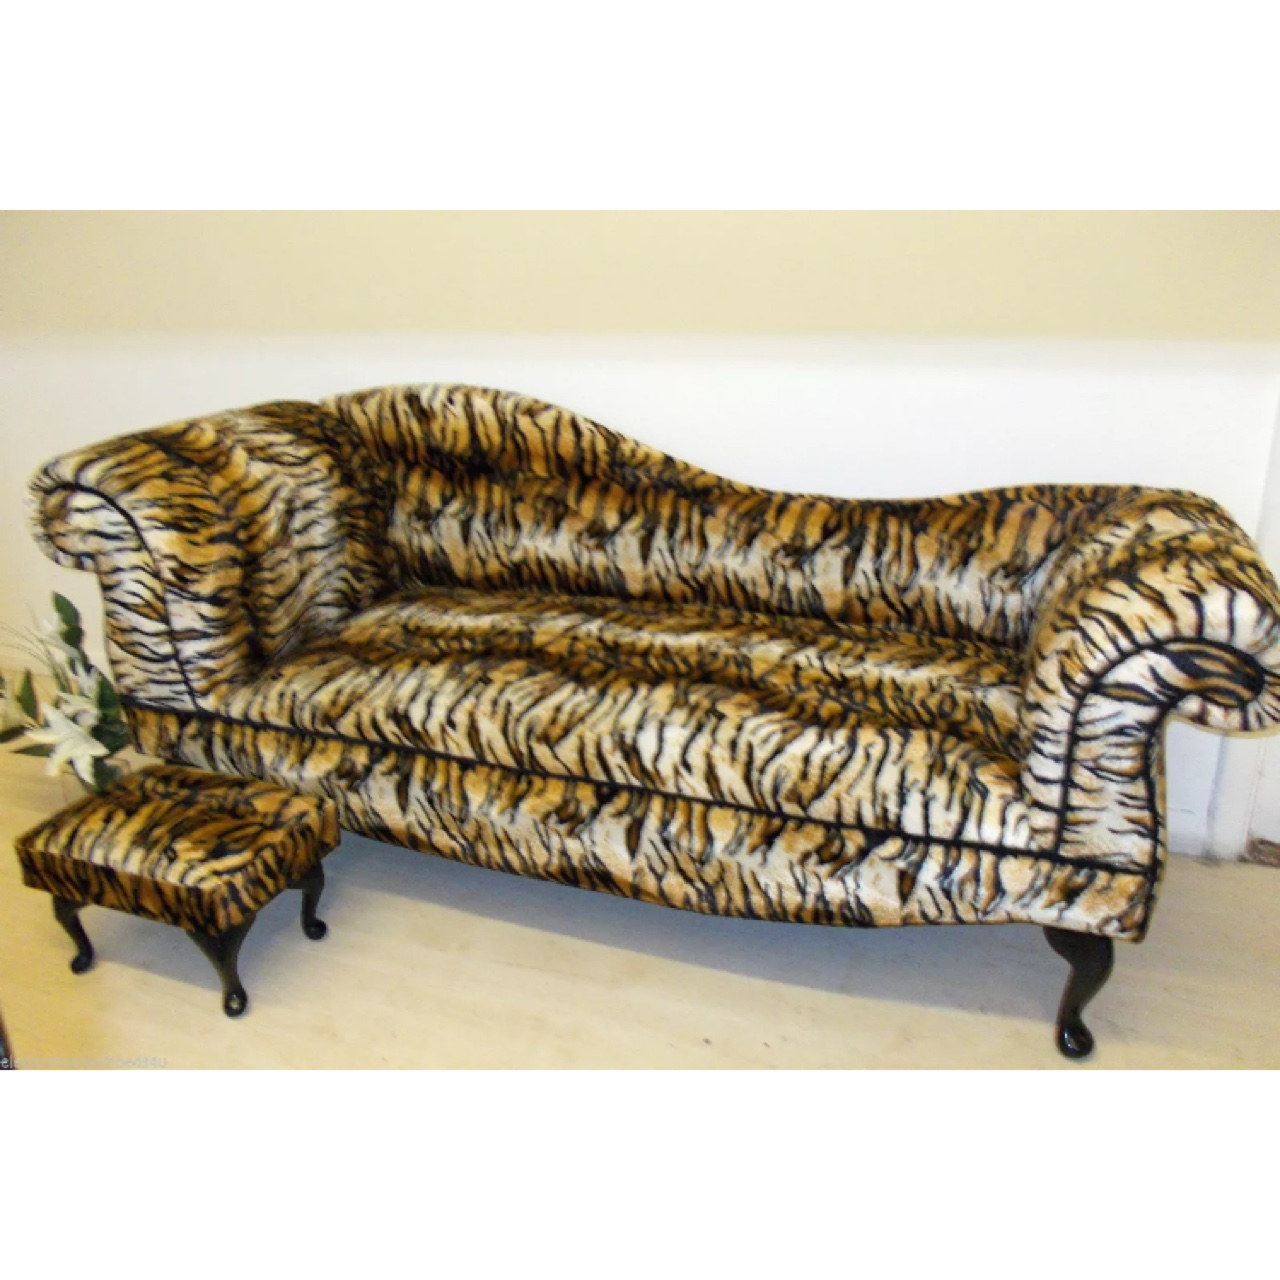 Strange Animal Tiger Print Chaise Lounge Double Sofa Andrewgaddart Wooden Chair Designs For Living Room Andrewgaddartcom